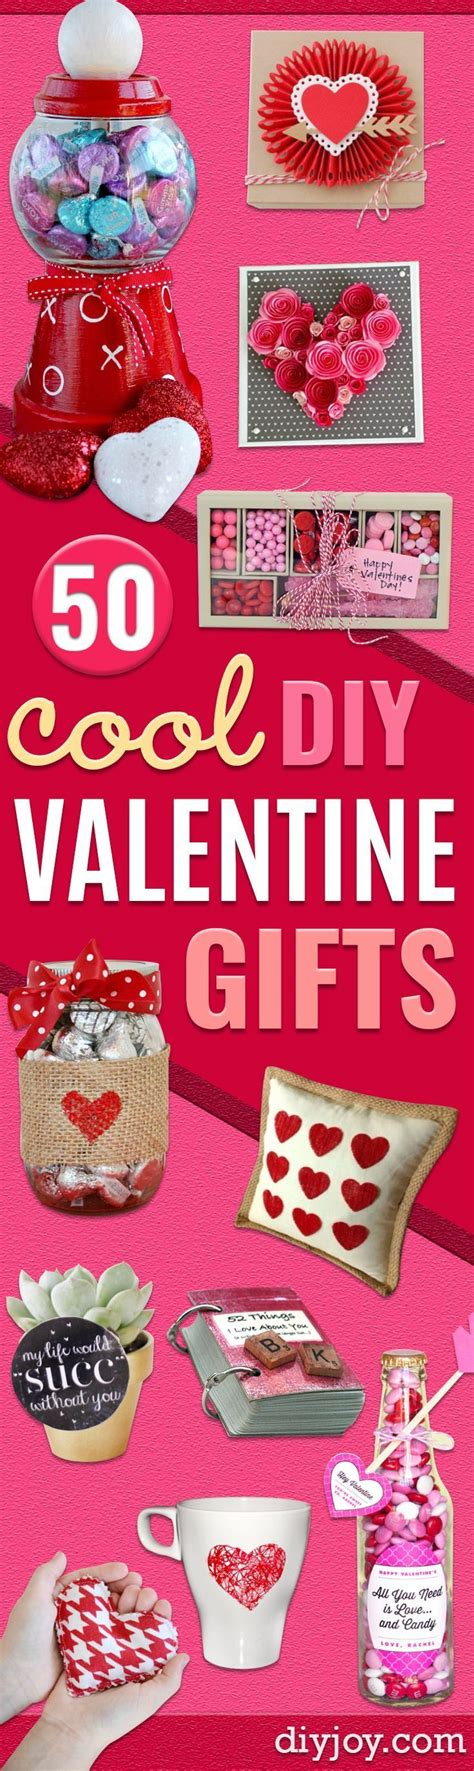 Best Images About Diy Gifts Gift Basket Ideas